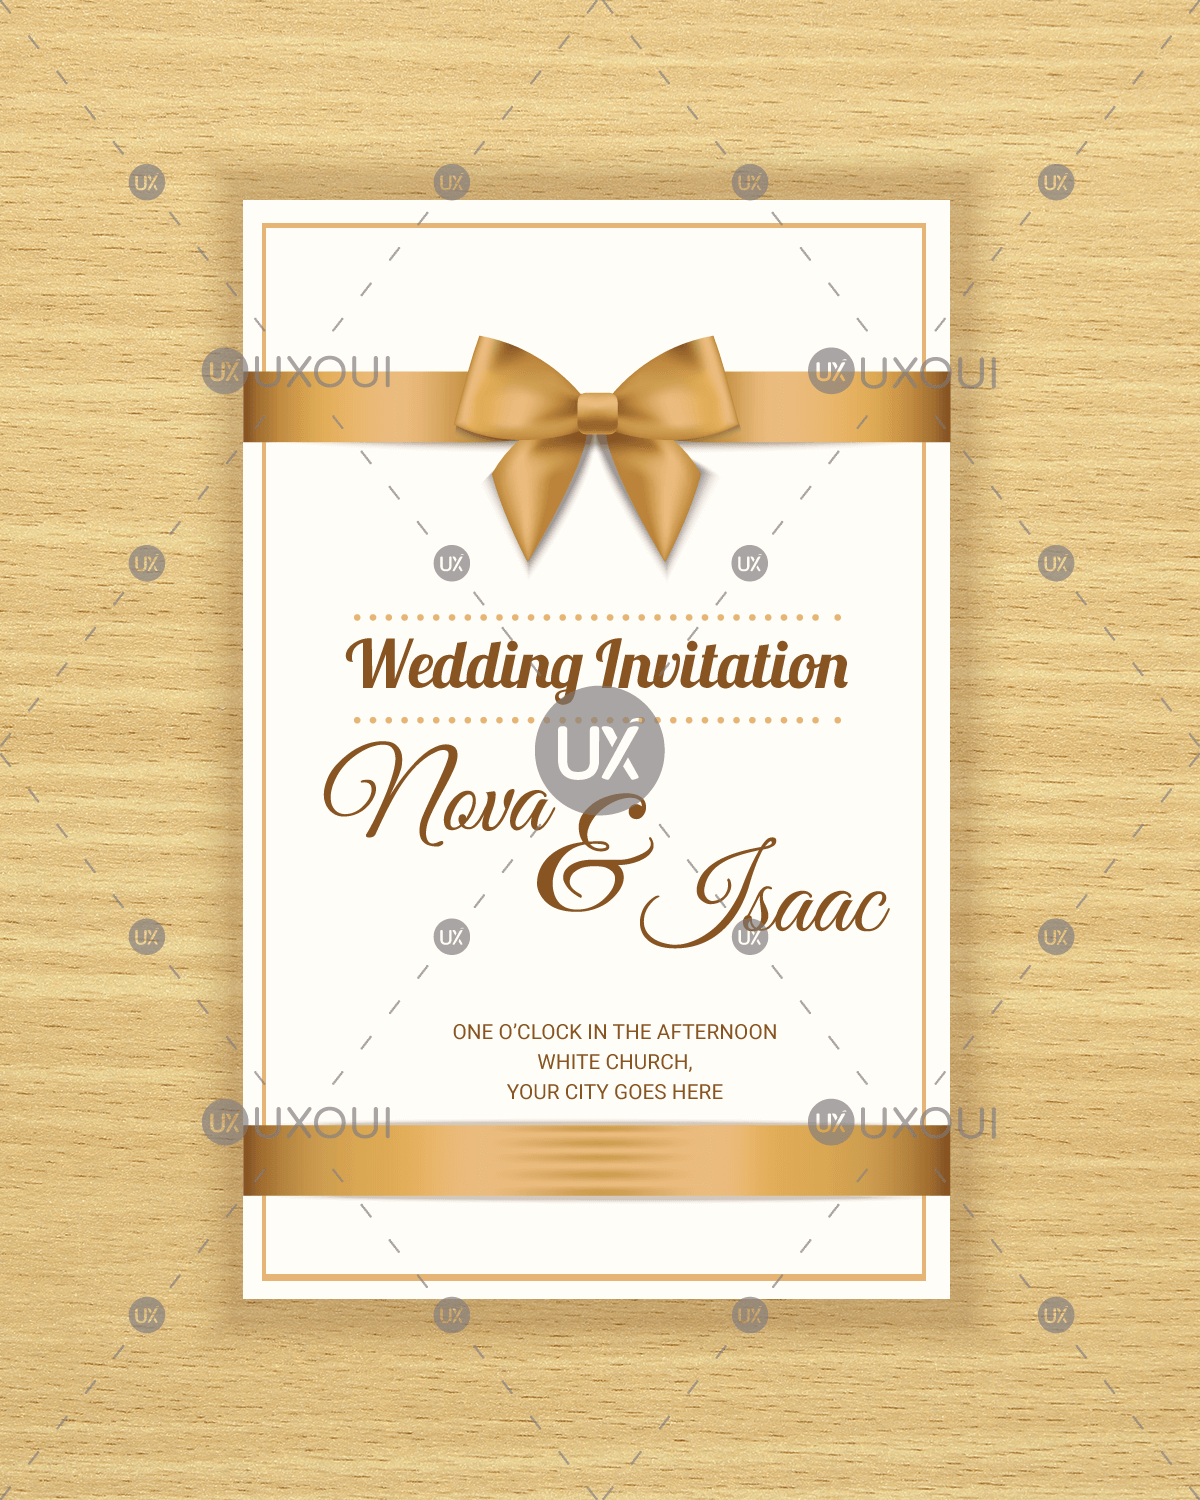 Create Invitation Template: Free Retro Wedding Invitation Card Template Design Vector